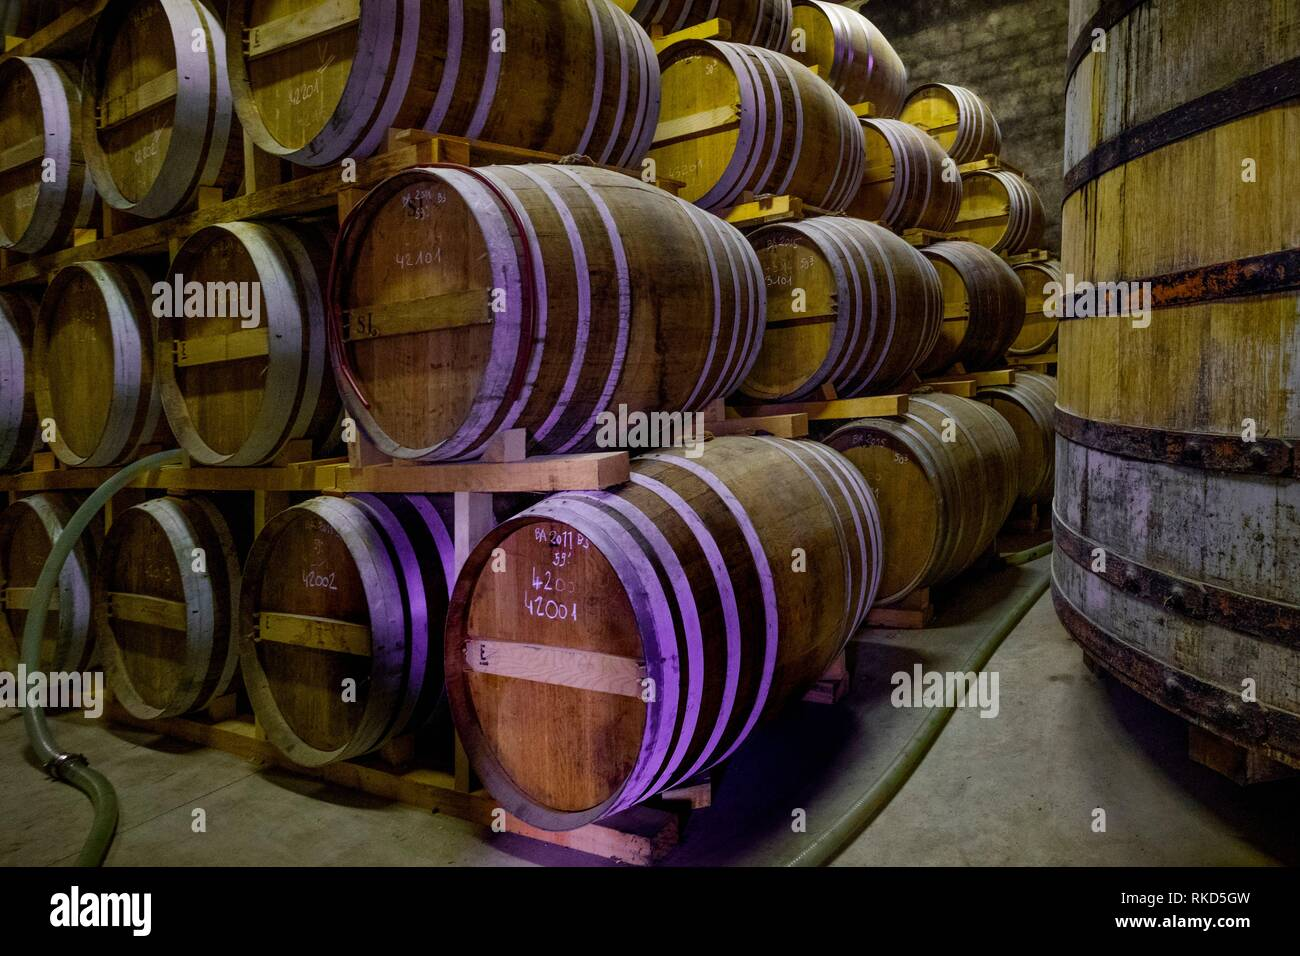 France, Occitanie, Gers, at the ''Armagnac Delord Estate'' at Lannepax. Cellar where the Armagnacs are ageing. - Stock Image